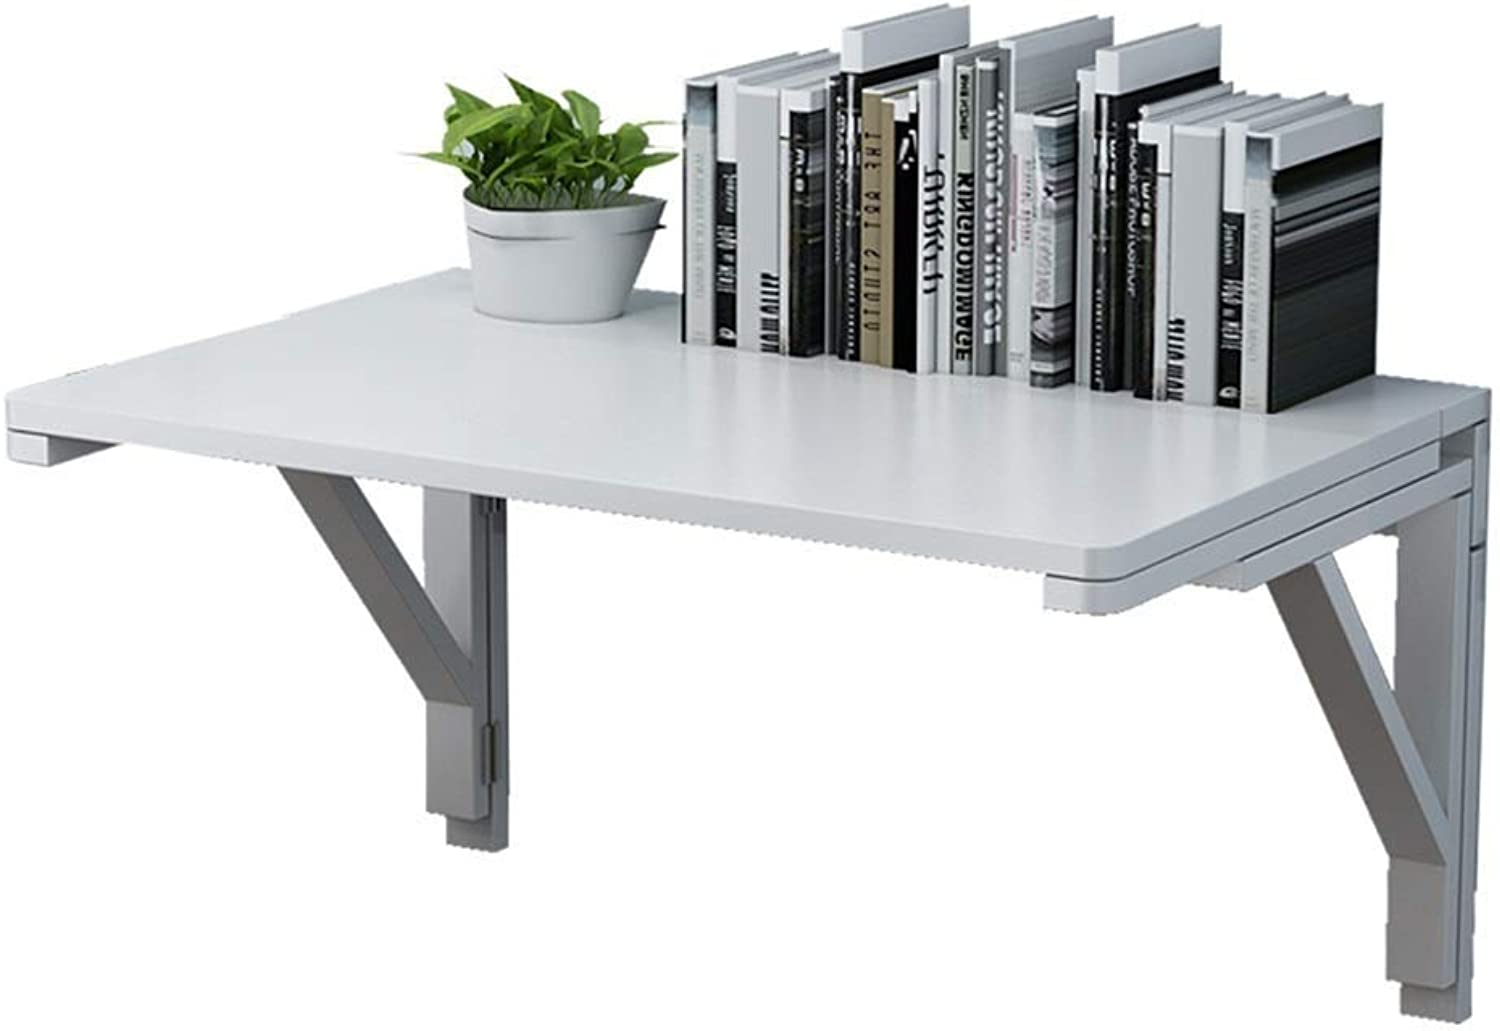 Qing MEI Wall-Mounted Solid Wood Folding Table Double Bracket Wall Table Wall-Mounted Desk White (Size  60x40cm) (Size   50x30cm)